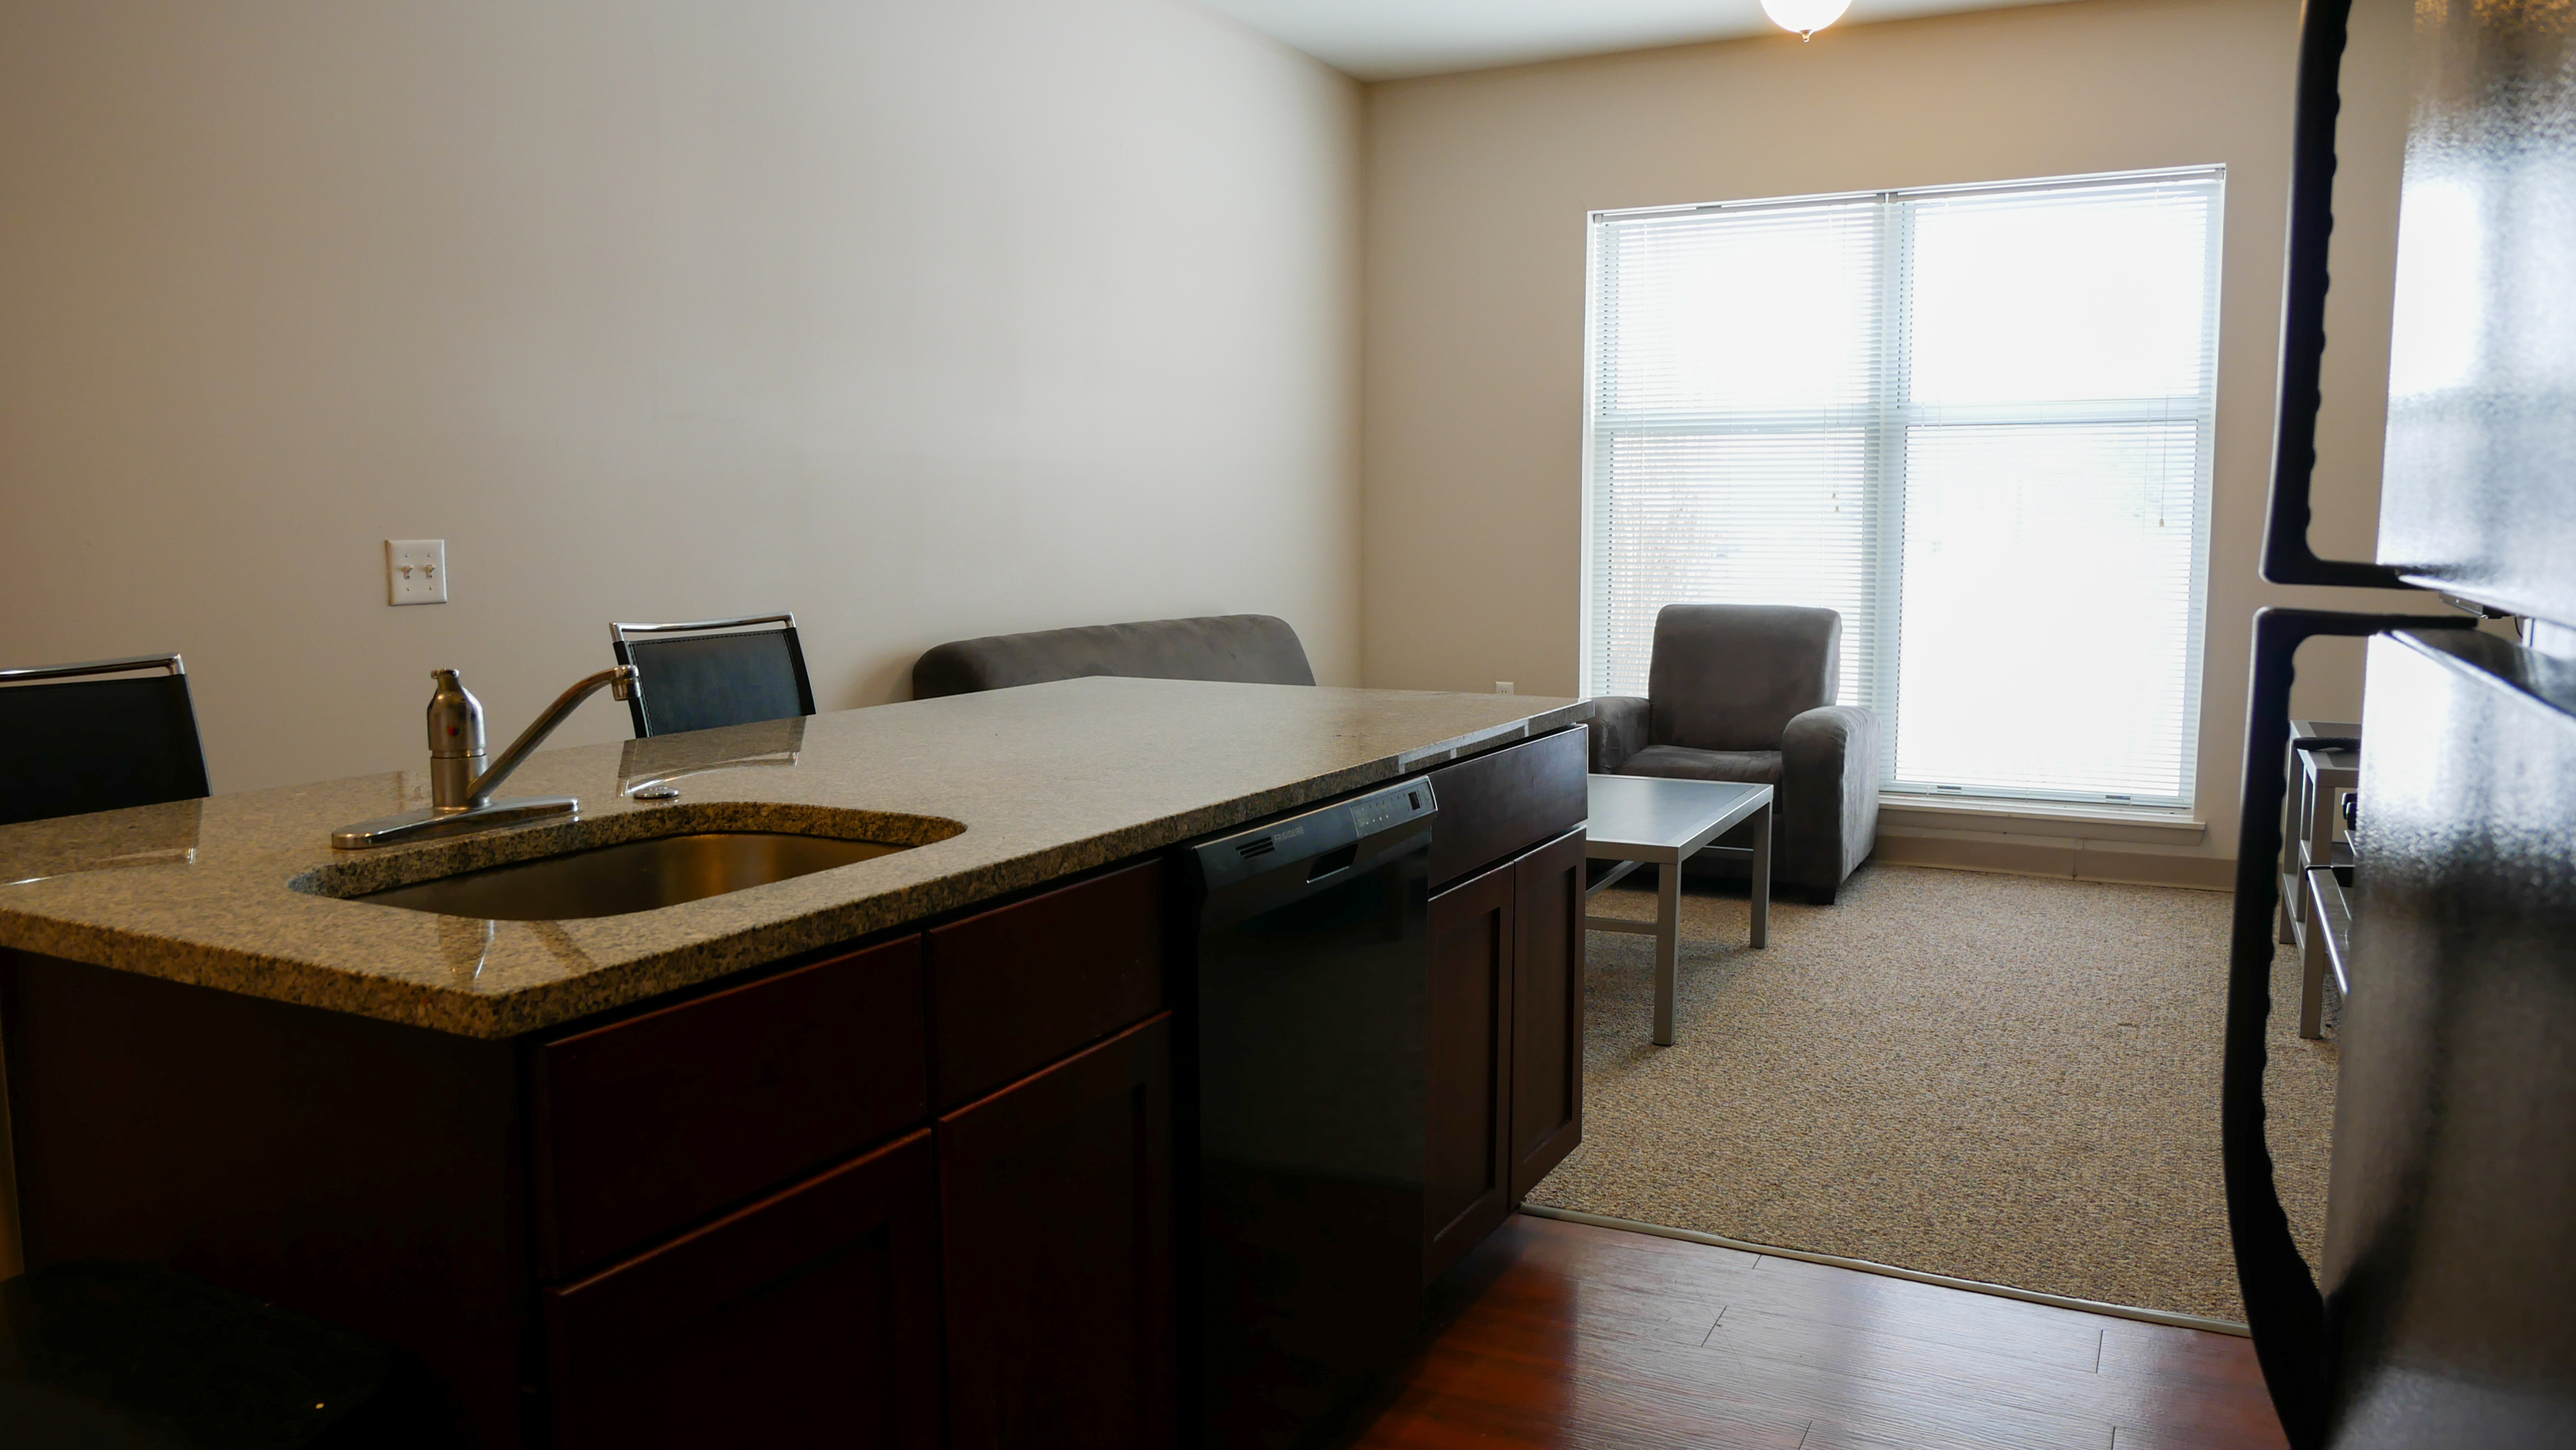 2x2 | The Union at Dearborn | Dearborn Apartments